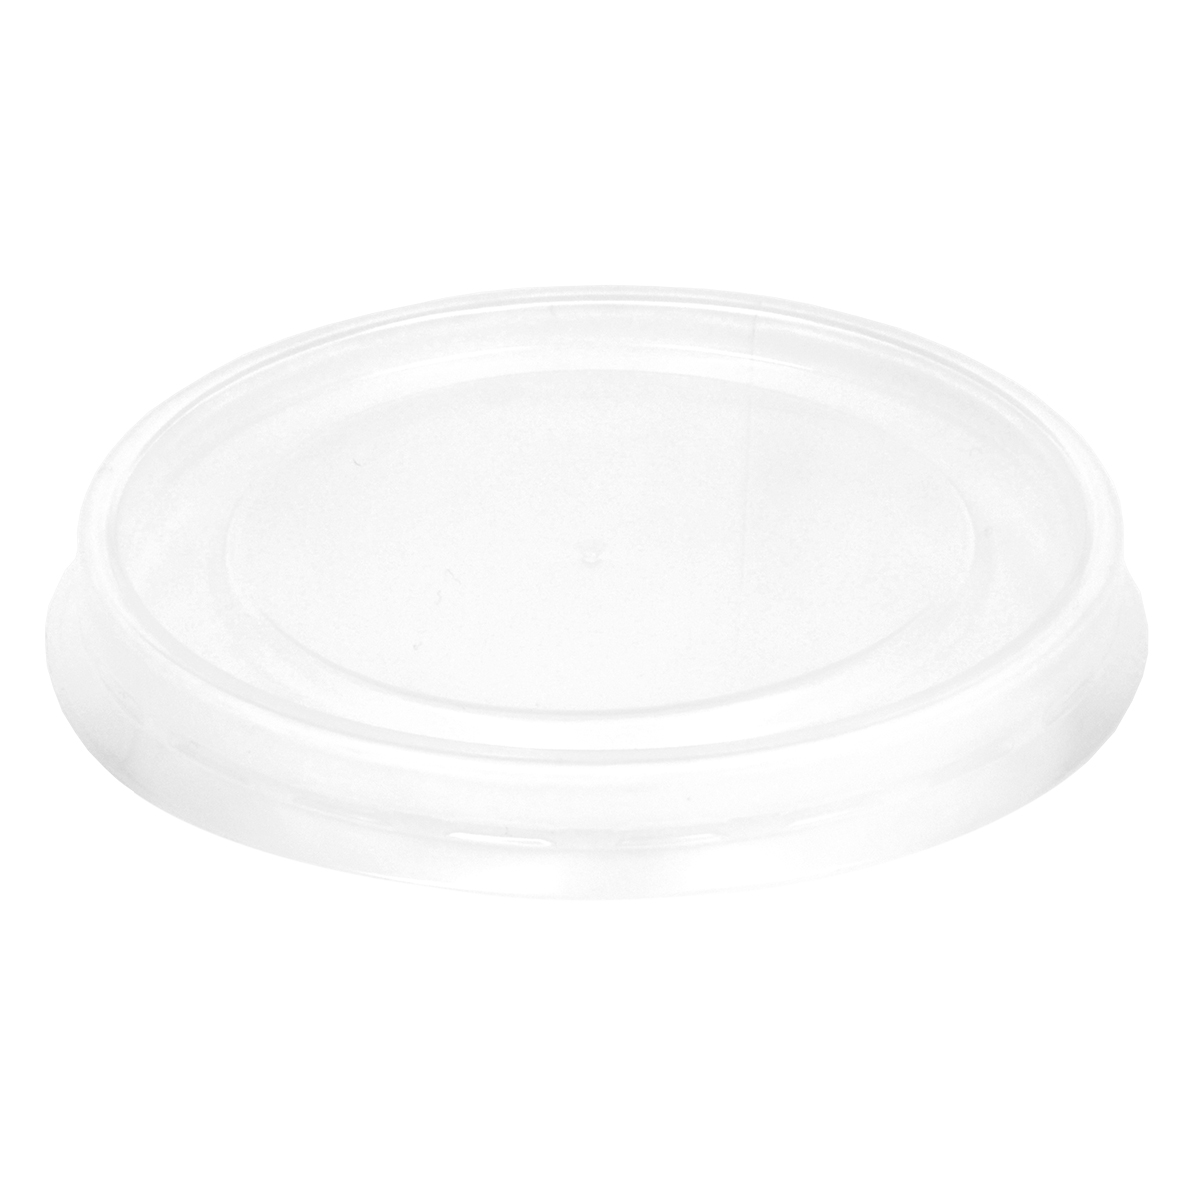 Inno-Pak Clear Small Polypropylene Lid (Fits 8, 10, 12, & 16 tall) 500 ct